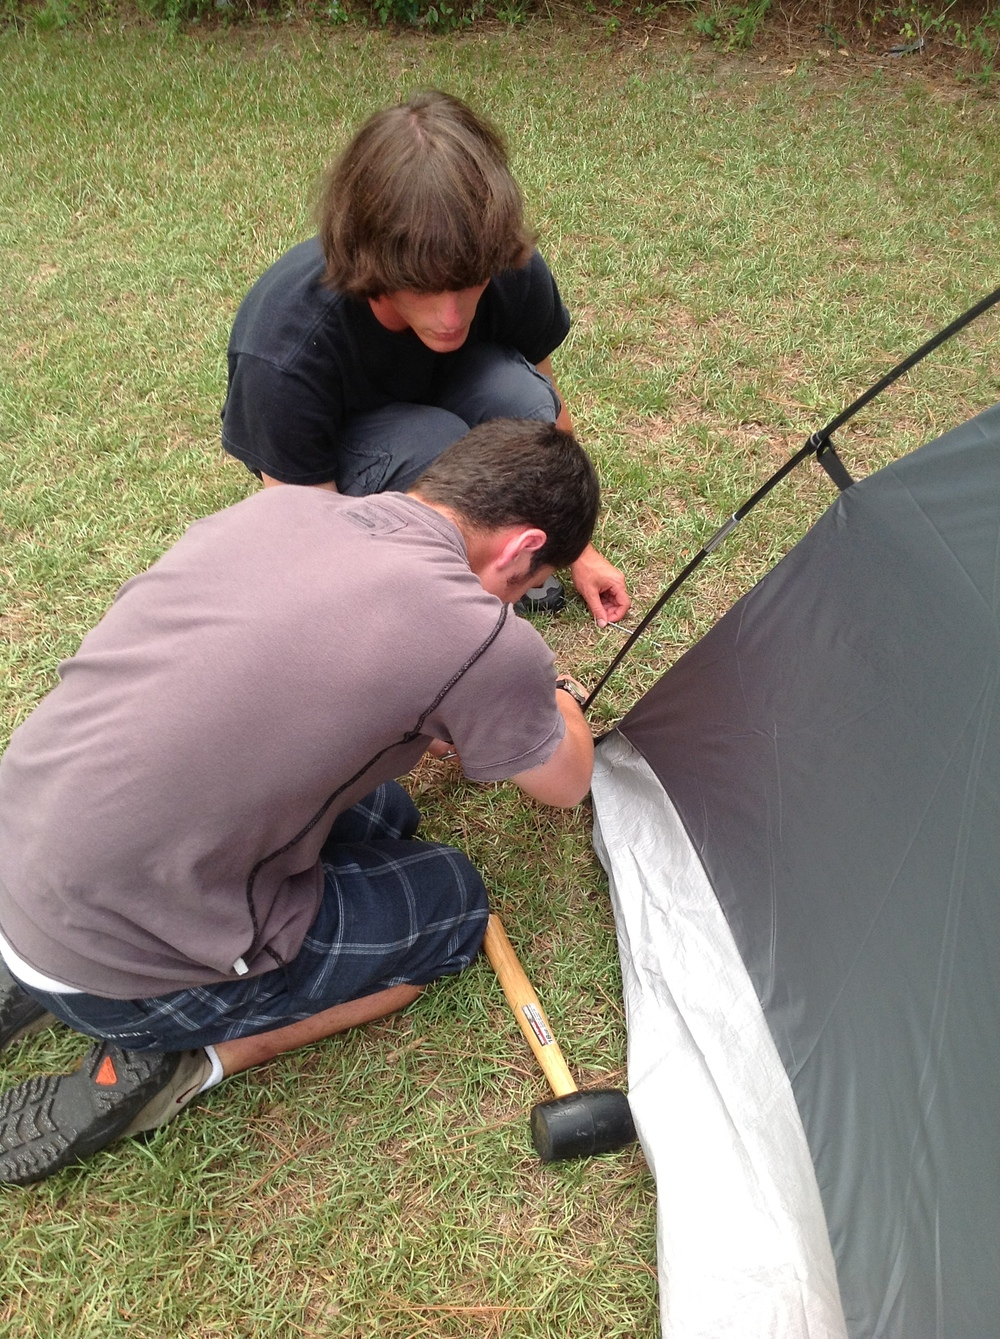 Ben (counselor) and Matthew ensure that the tent is secure.